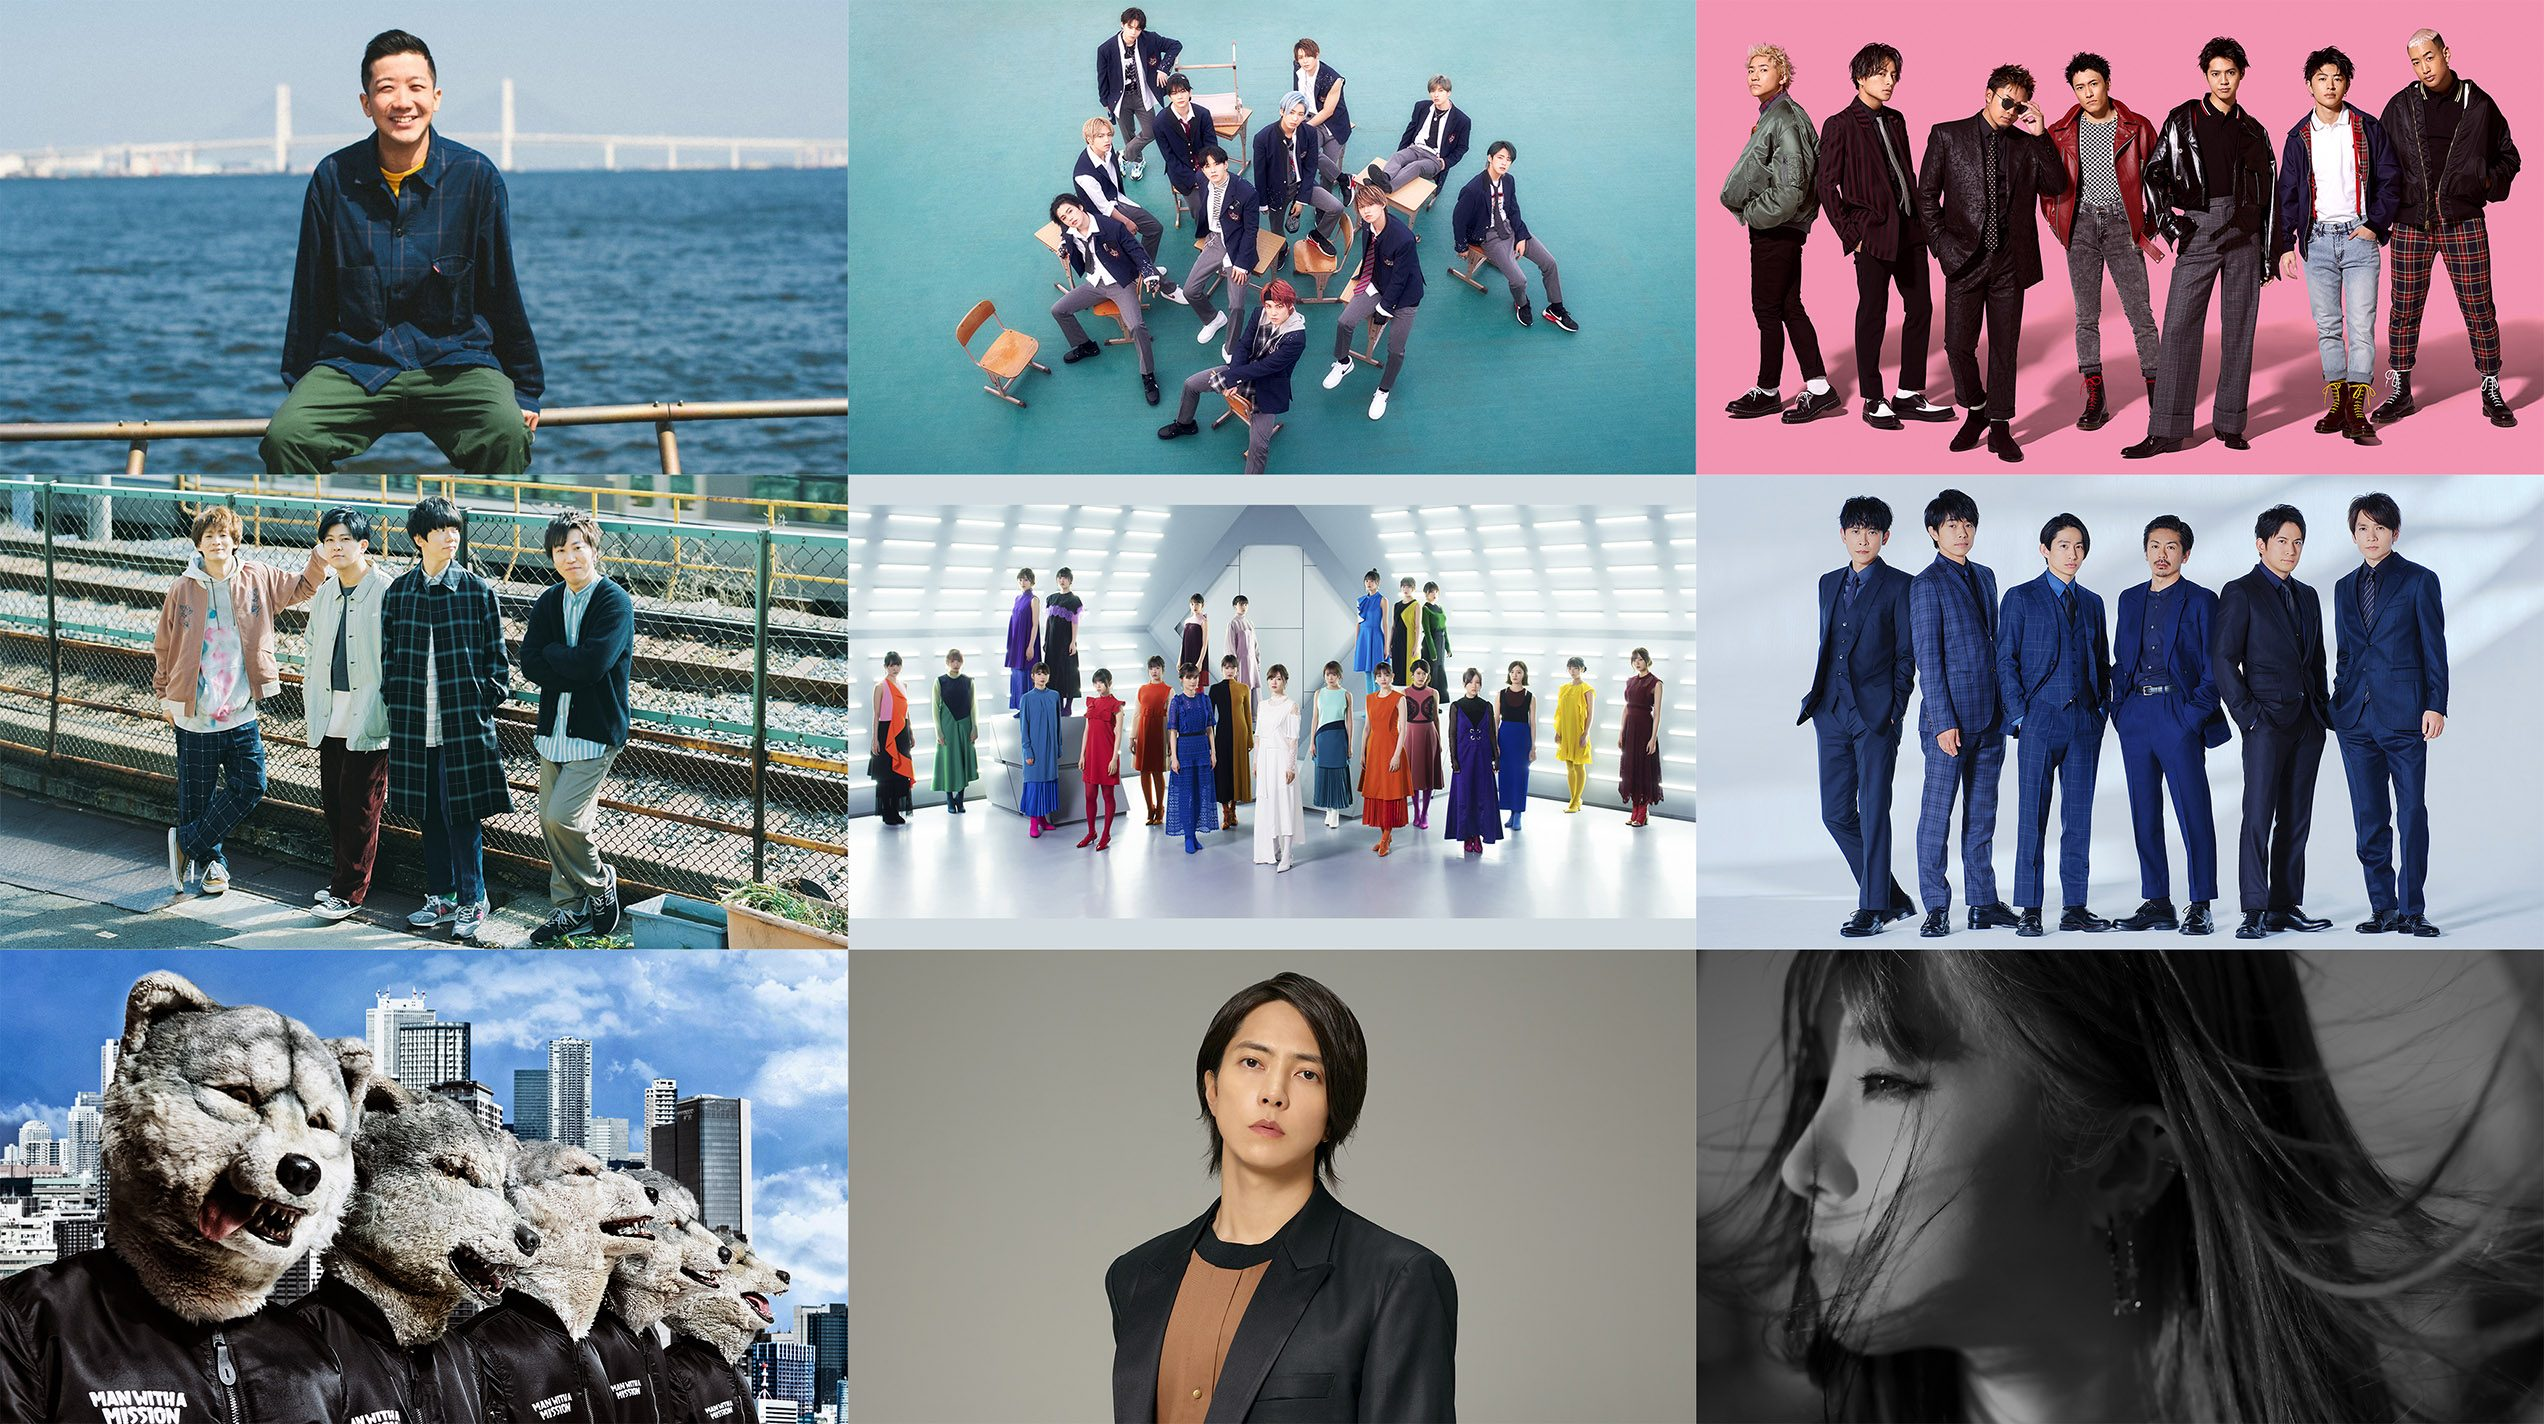 『HEY!HEY!NEO! MUSIC CHAMP』に出演する(左上から)瑛人、JO1、GENERATIONS from EXILE TRIBE、sumika、乃木坂46、V6、MAN WITH A MISSION、山下智久、LiSA